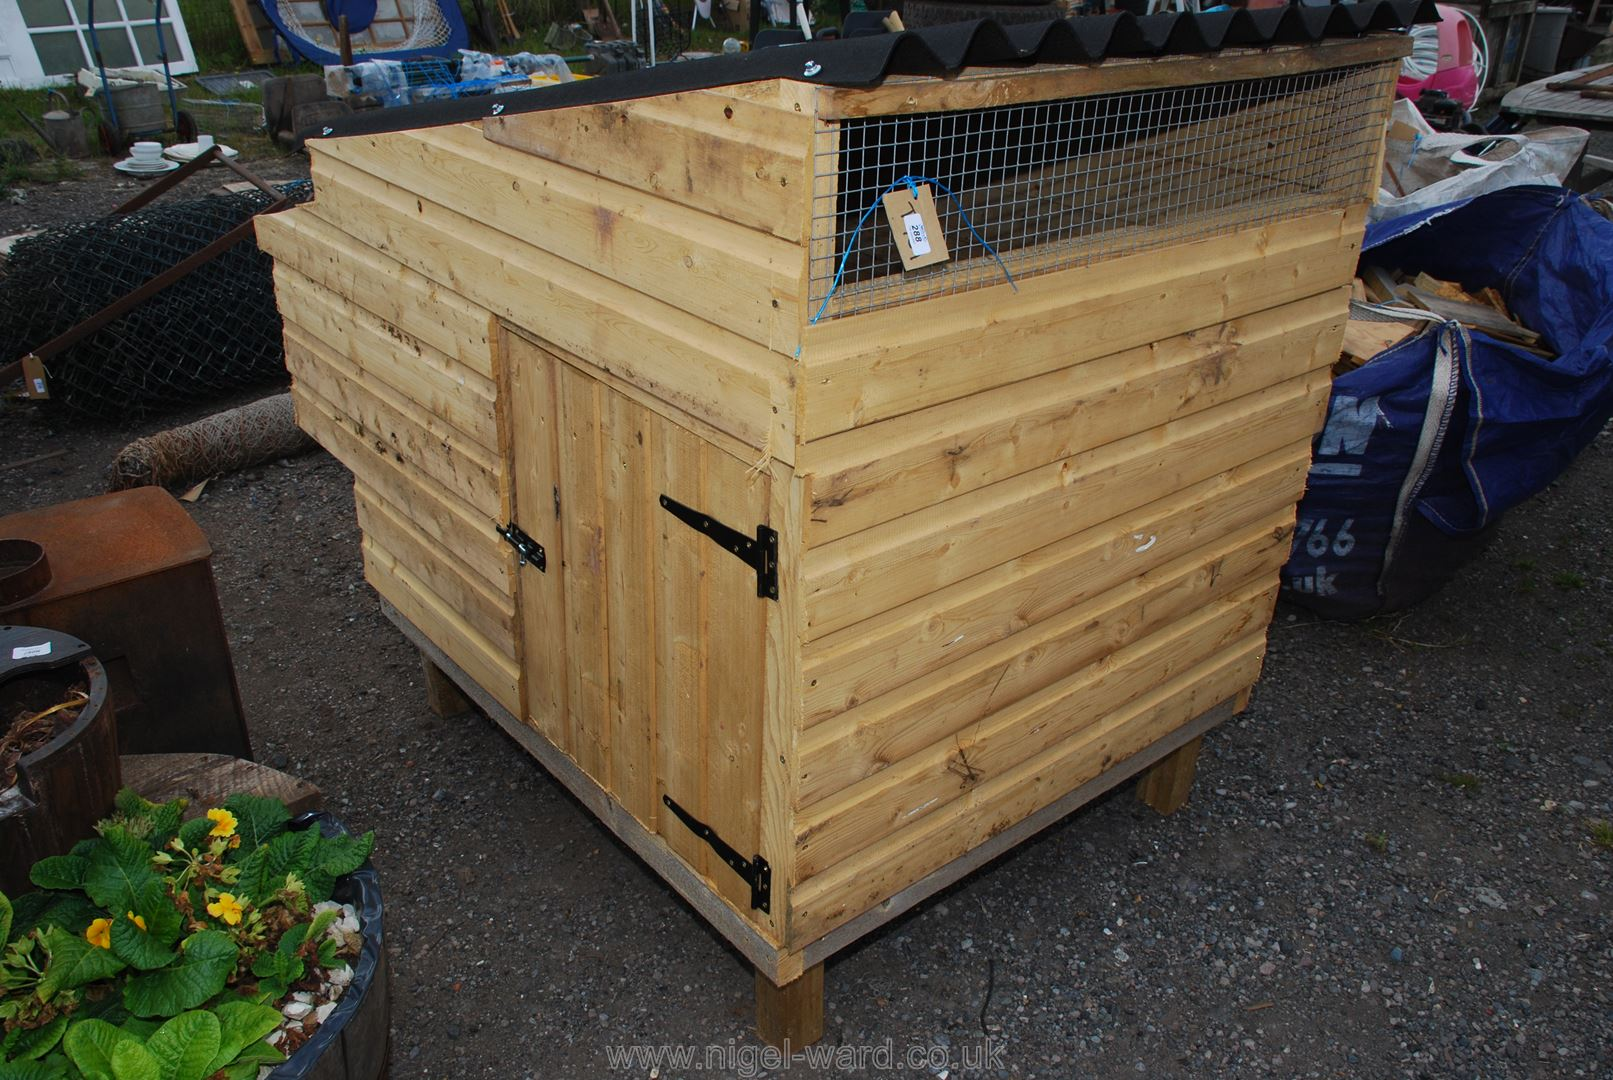 A wooden 1/2 barrow garden planter with feature. - Image 2 of 2